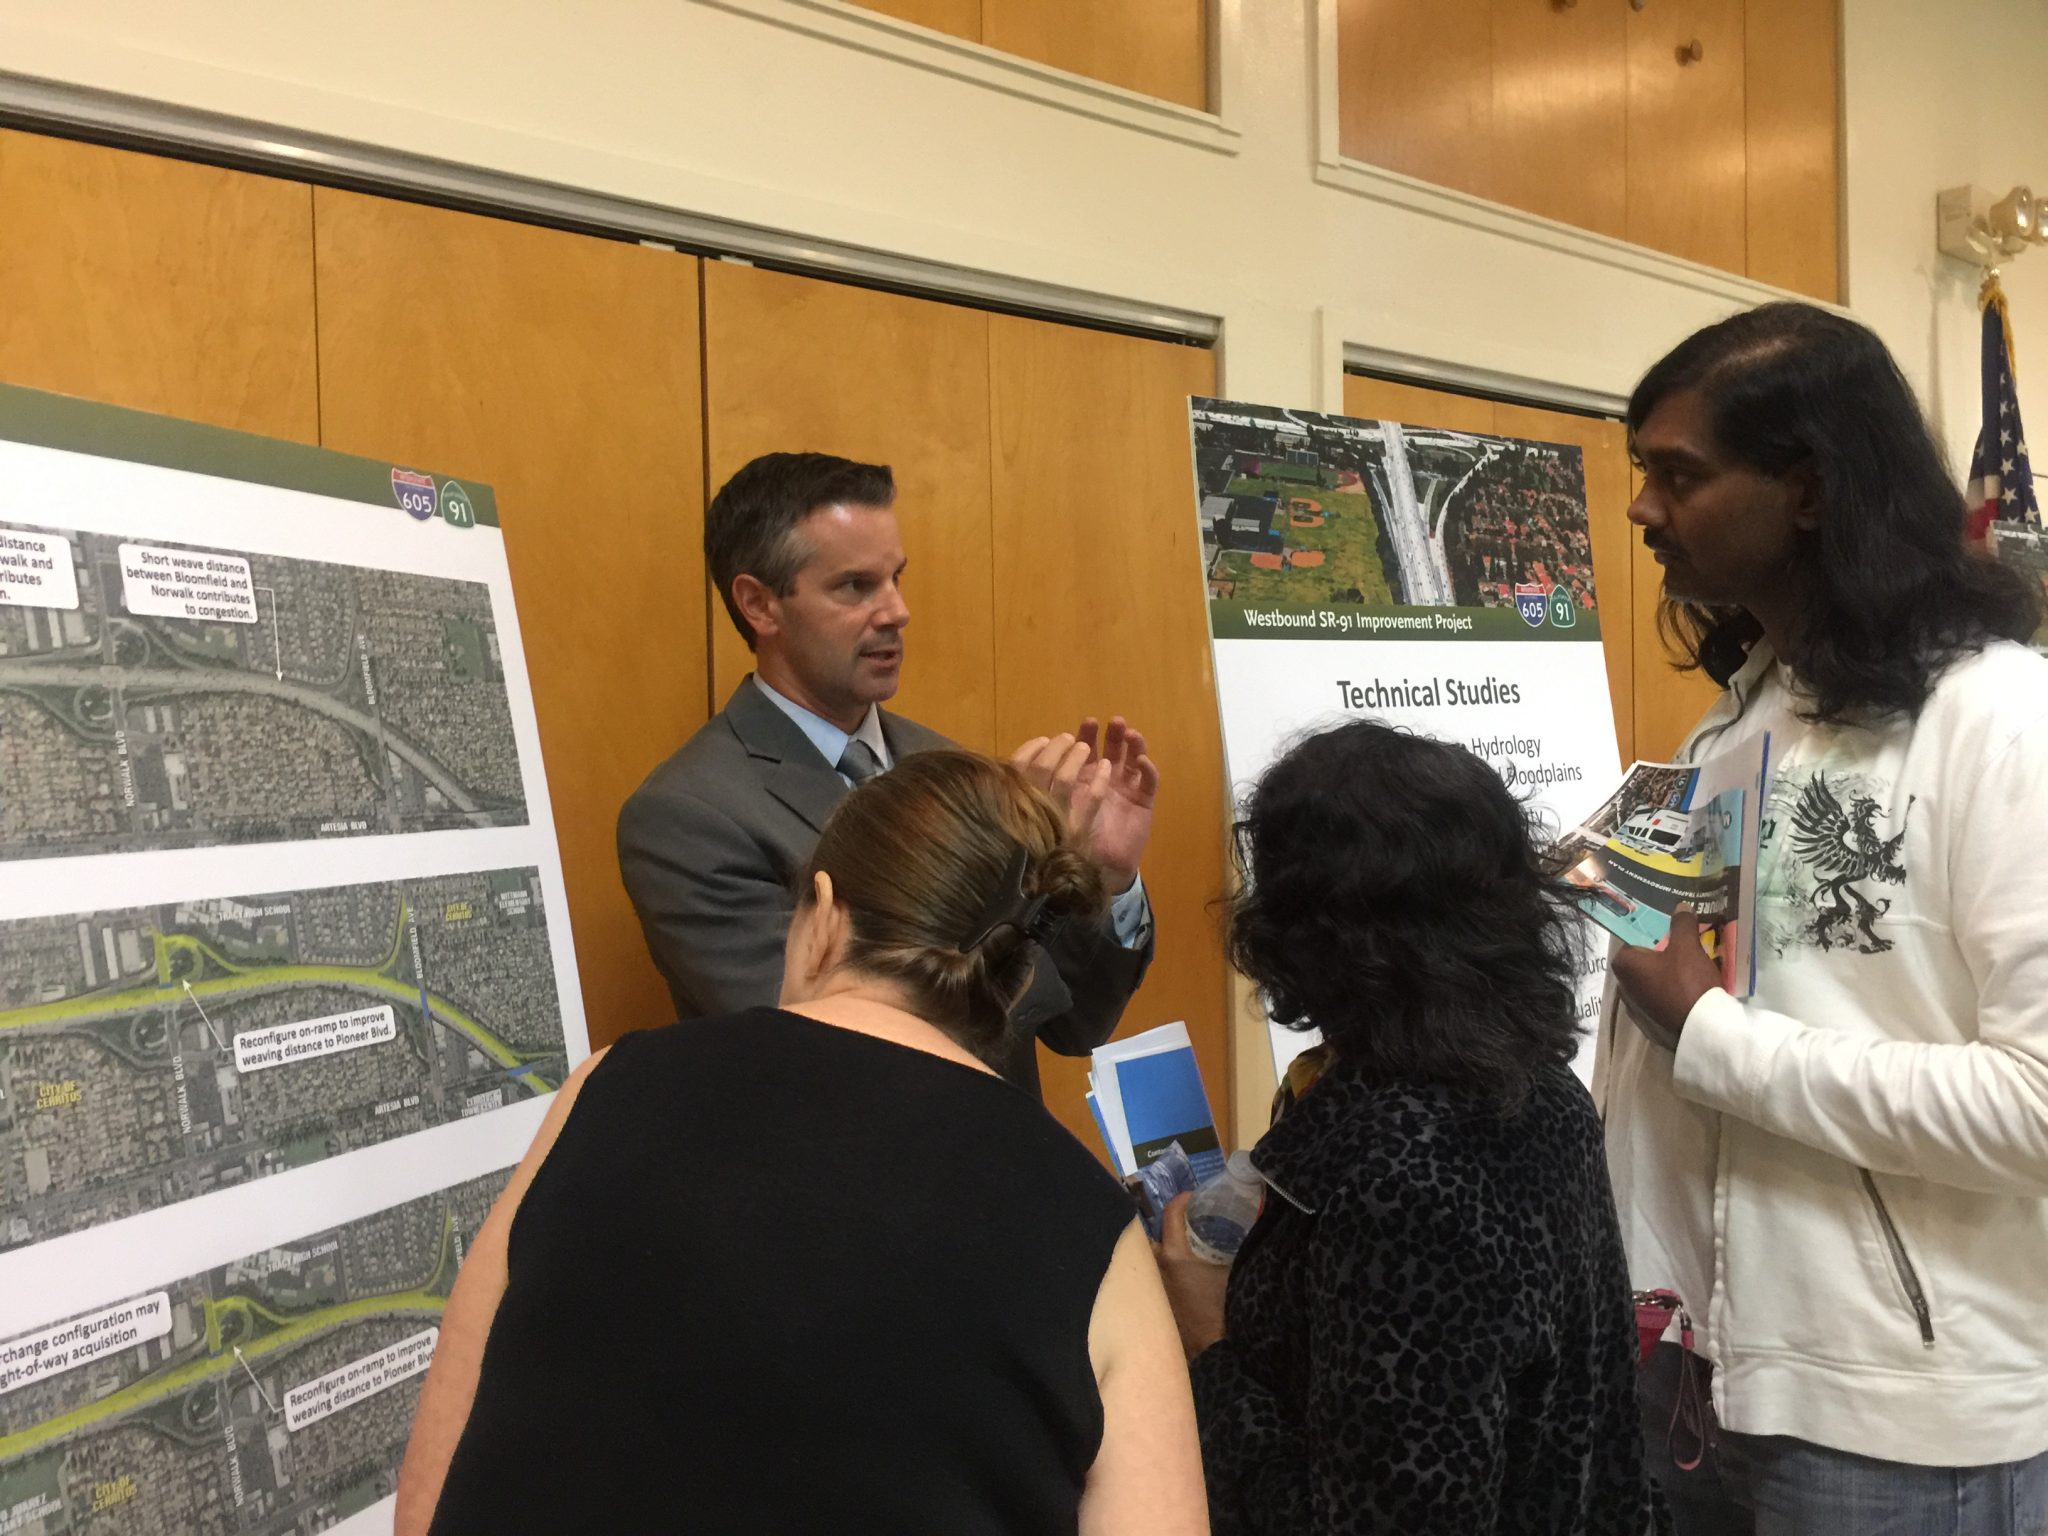 Upcoming Westbound SR-91 Improvements Project community meetings